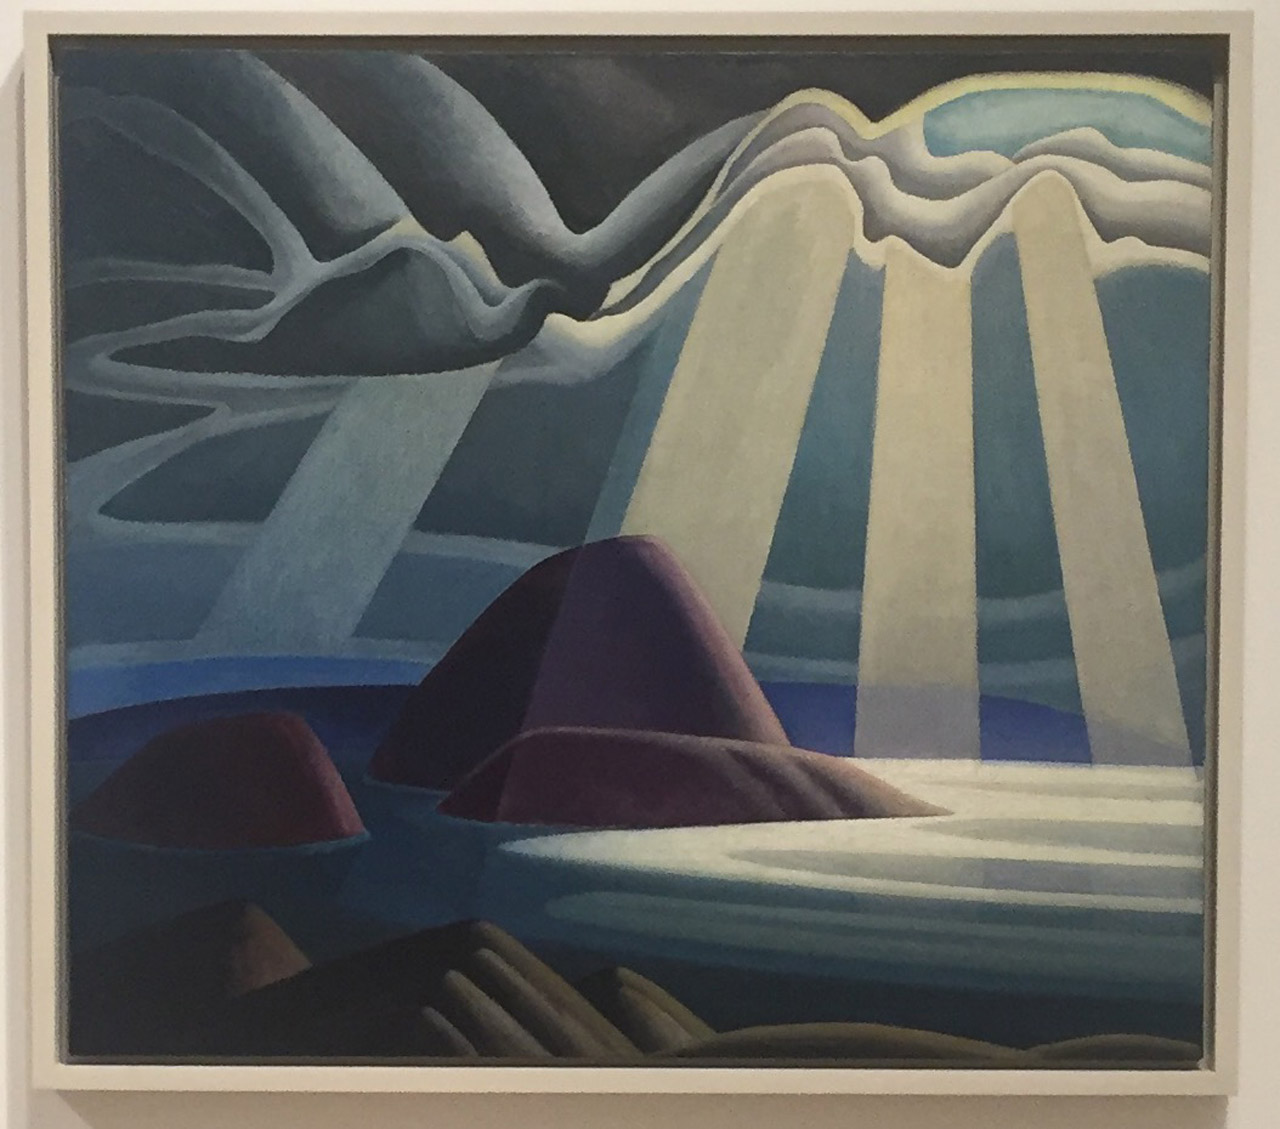 """Lawren Harris, """"Lake Superior"""" (c. 1923), oil on canvas, 44 × 49 1⁄2 in (111.8 × 126.9 cm), The Thompson Collection at Art Gallery of Ontario"""